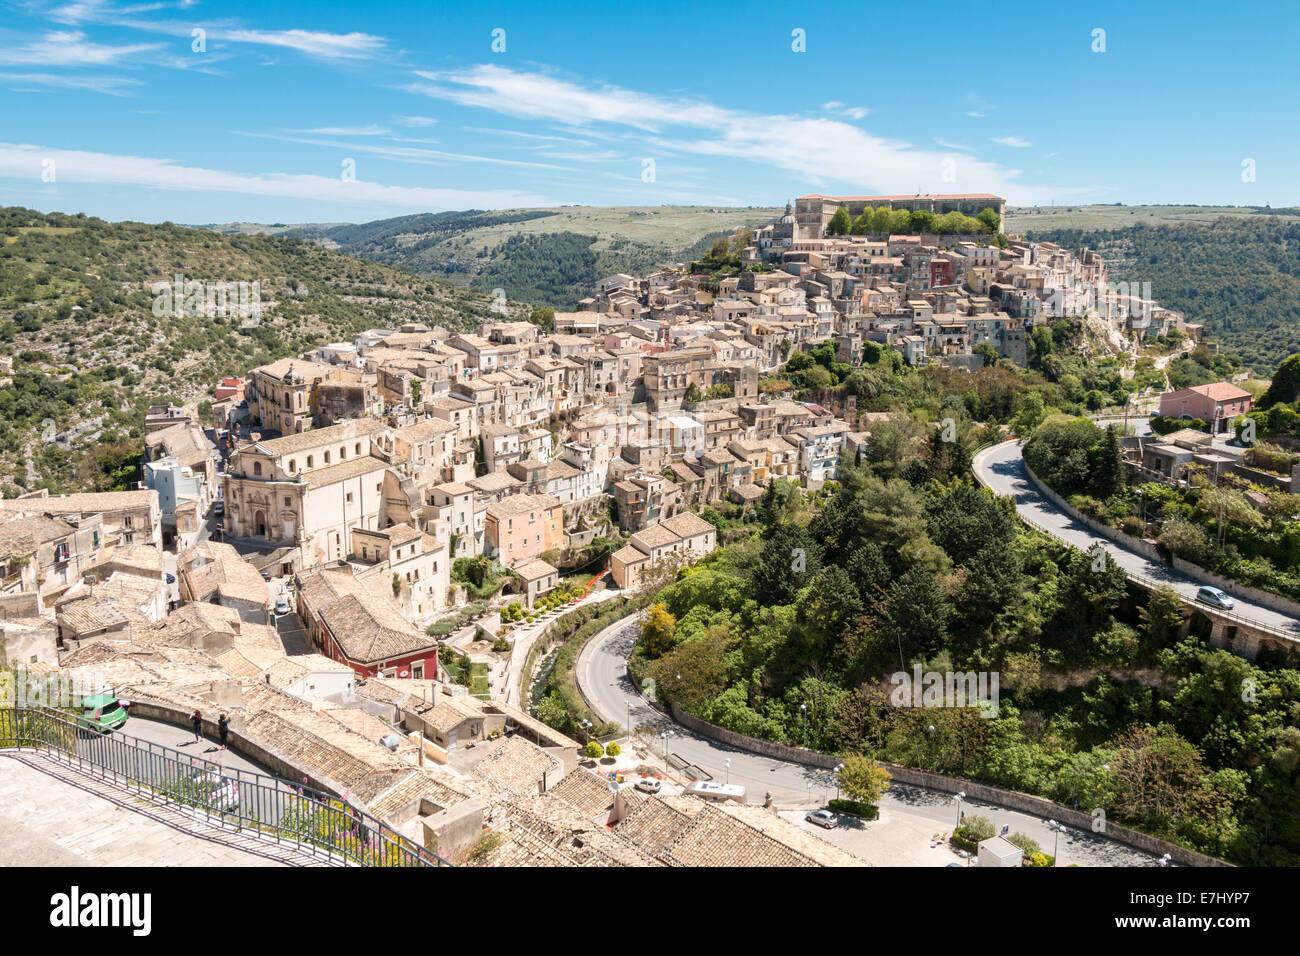 Ragusa Ibla small town in Silcily - Stock Image